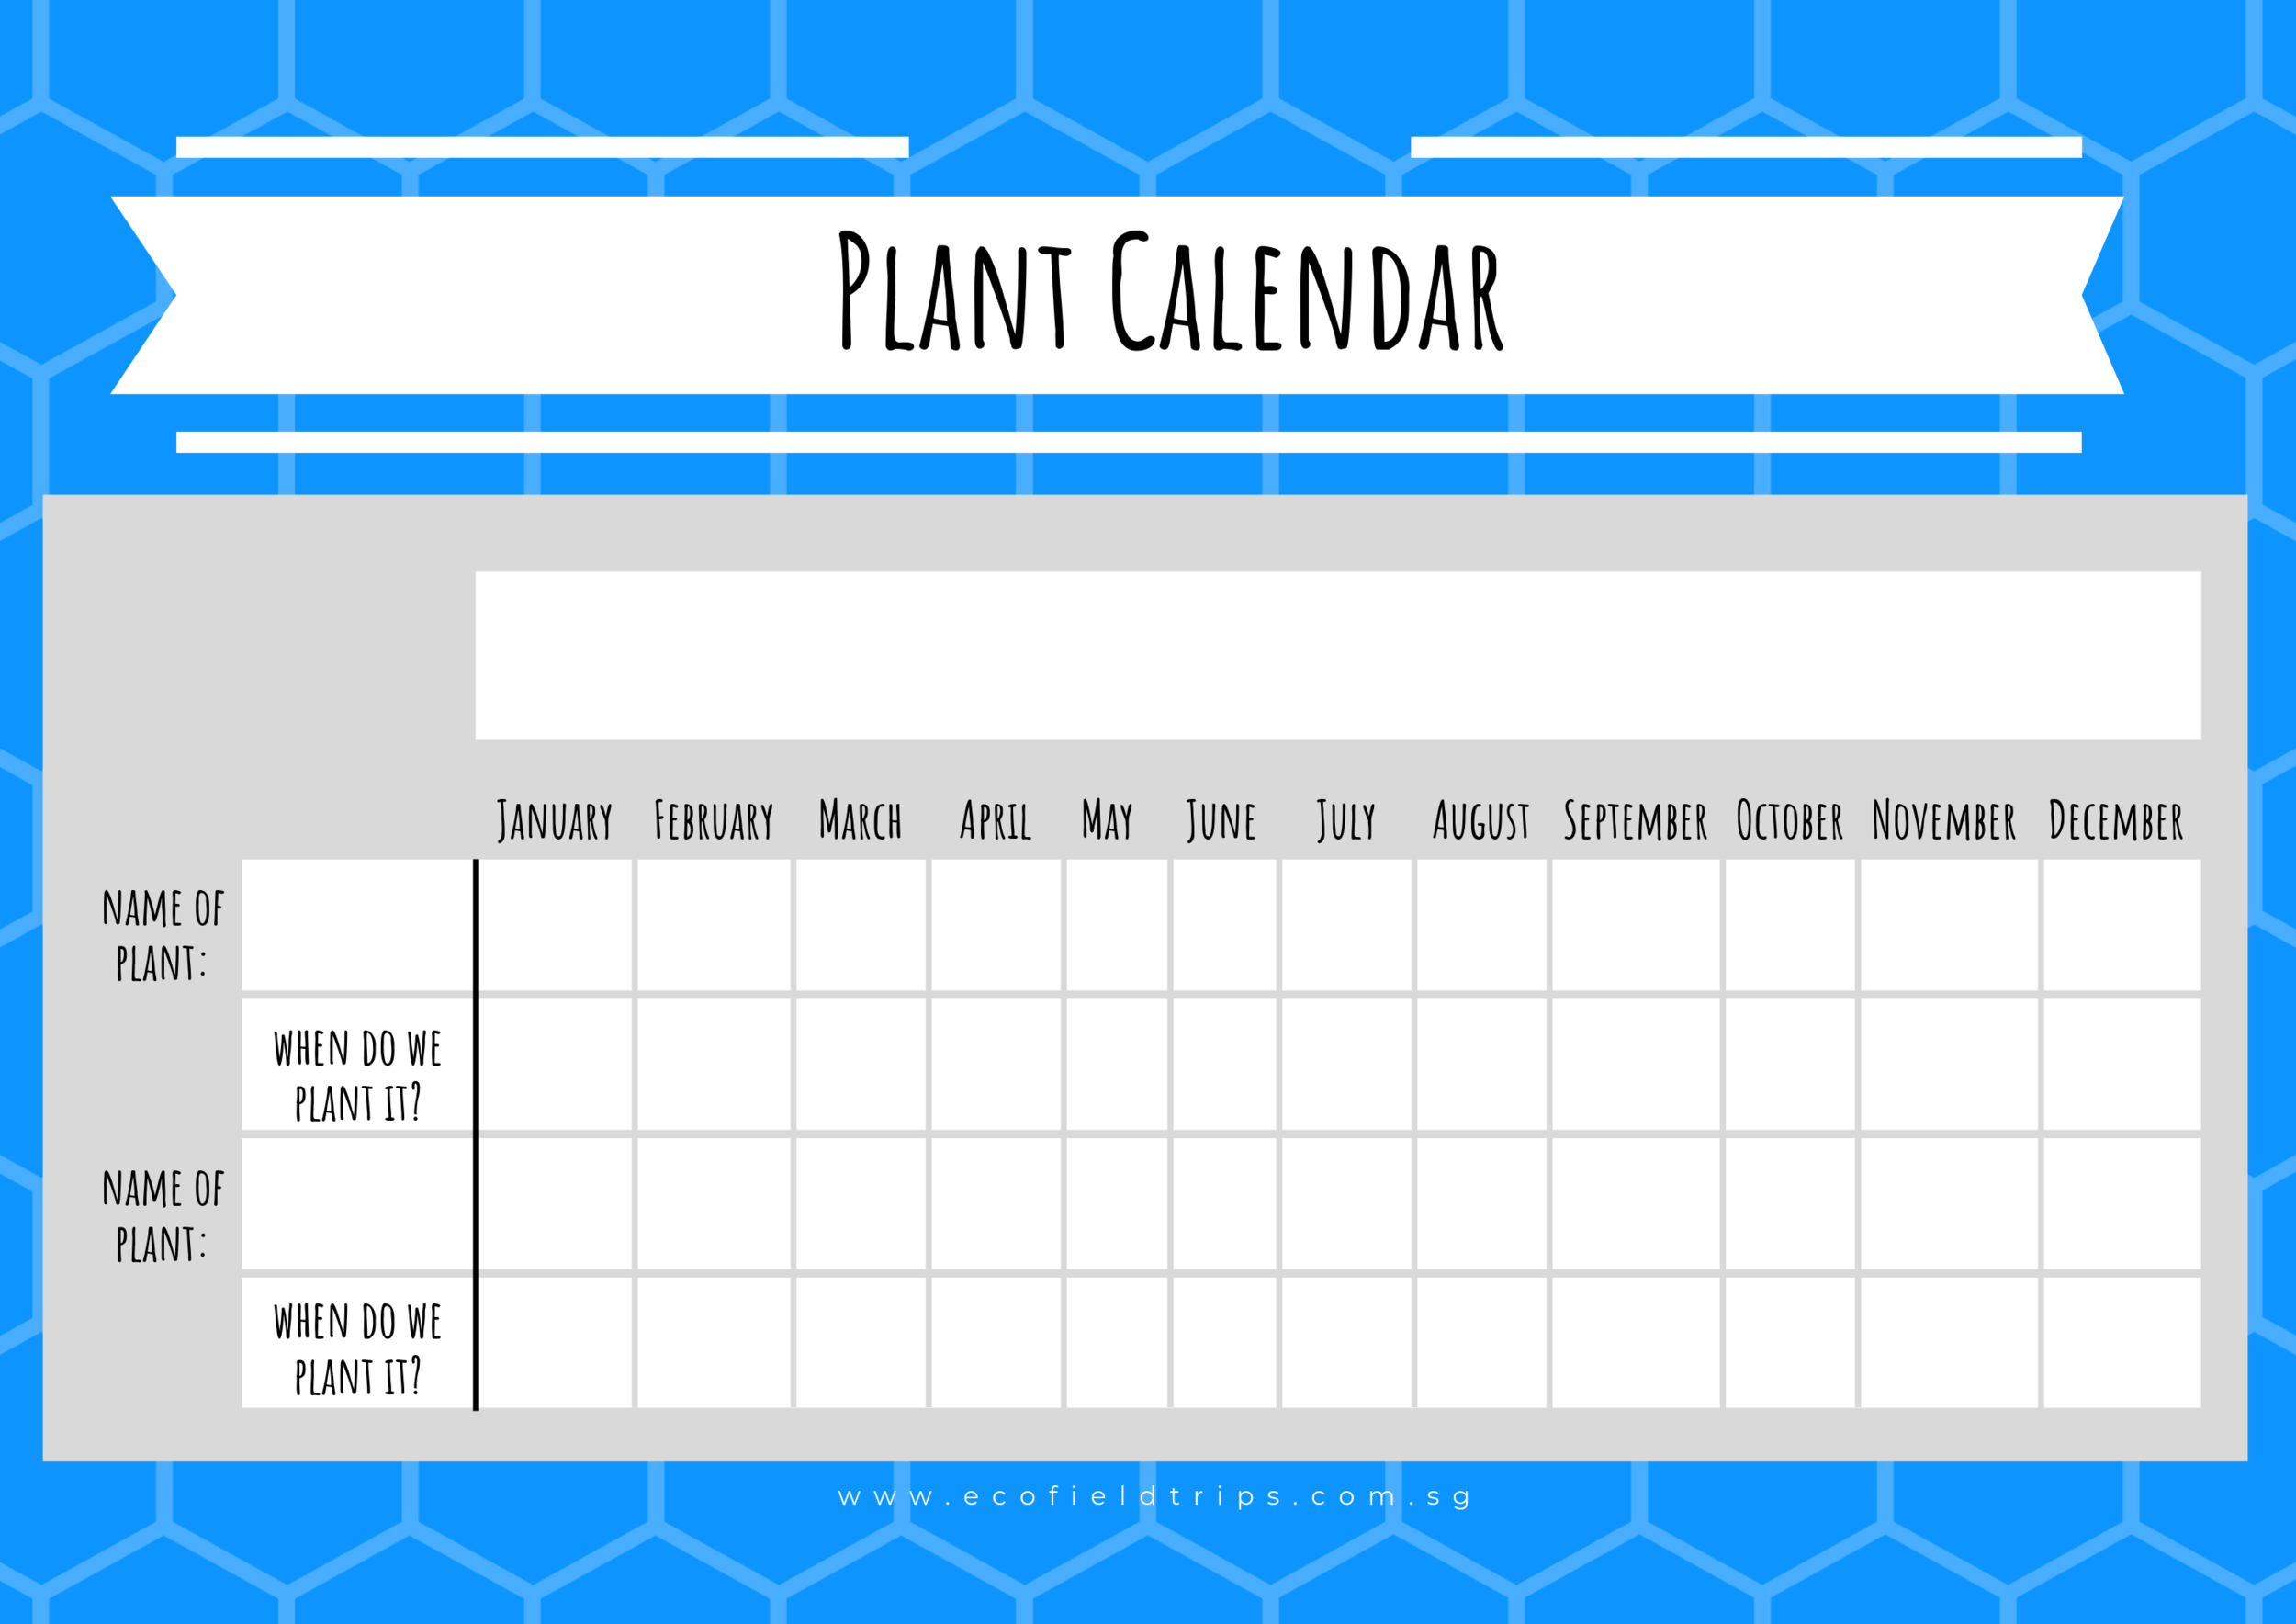 Use this template for your harvest calendar!